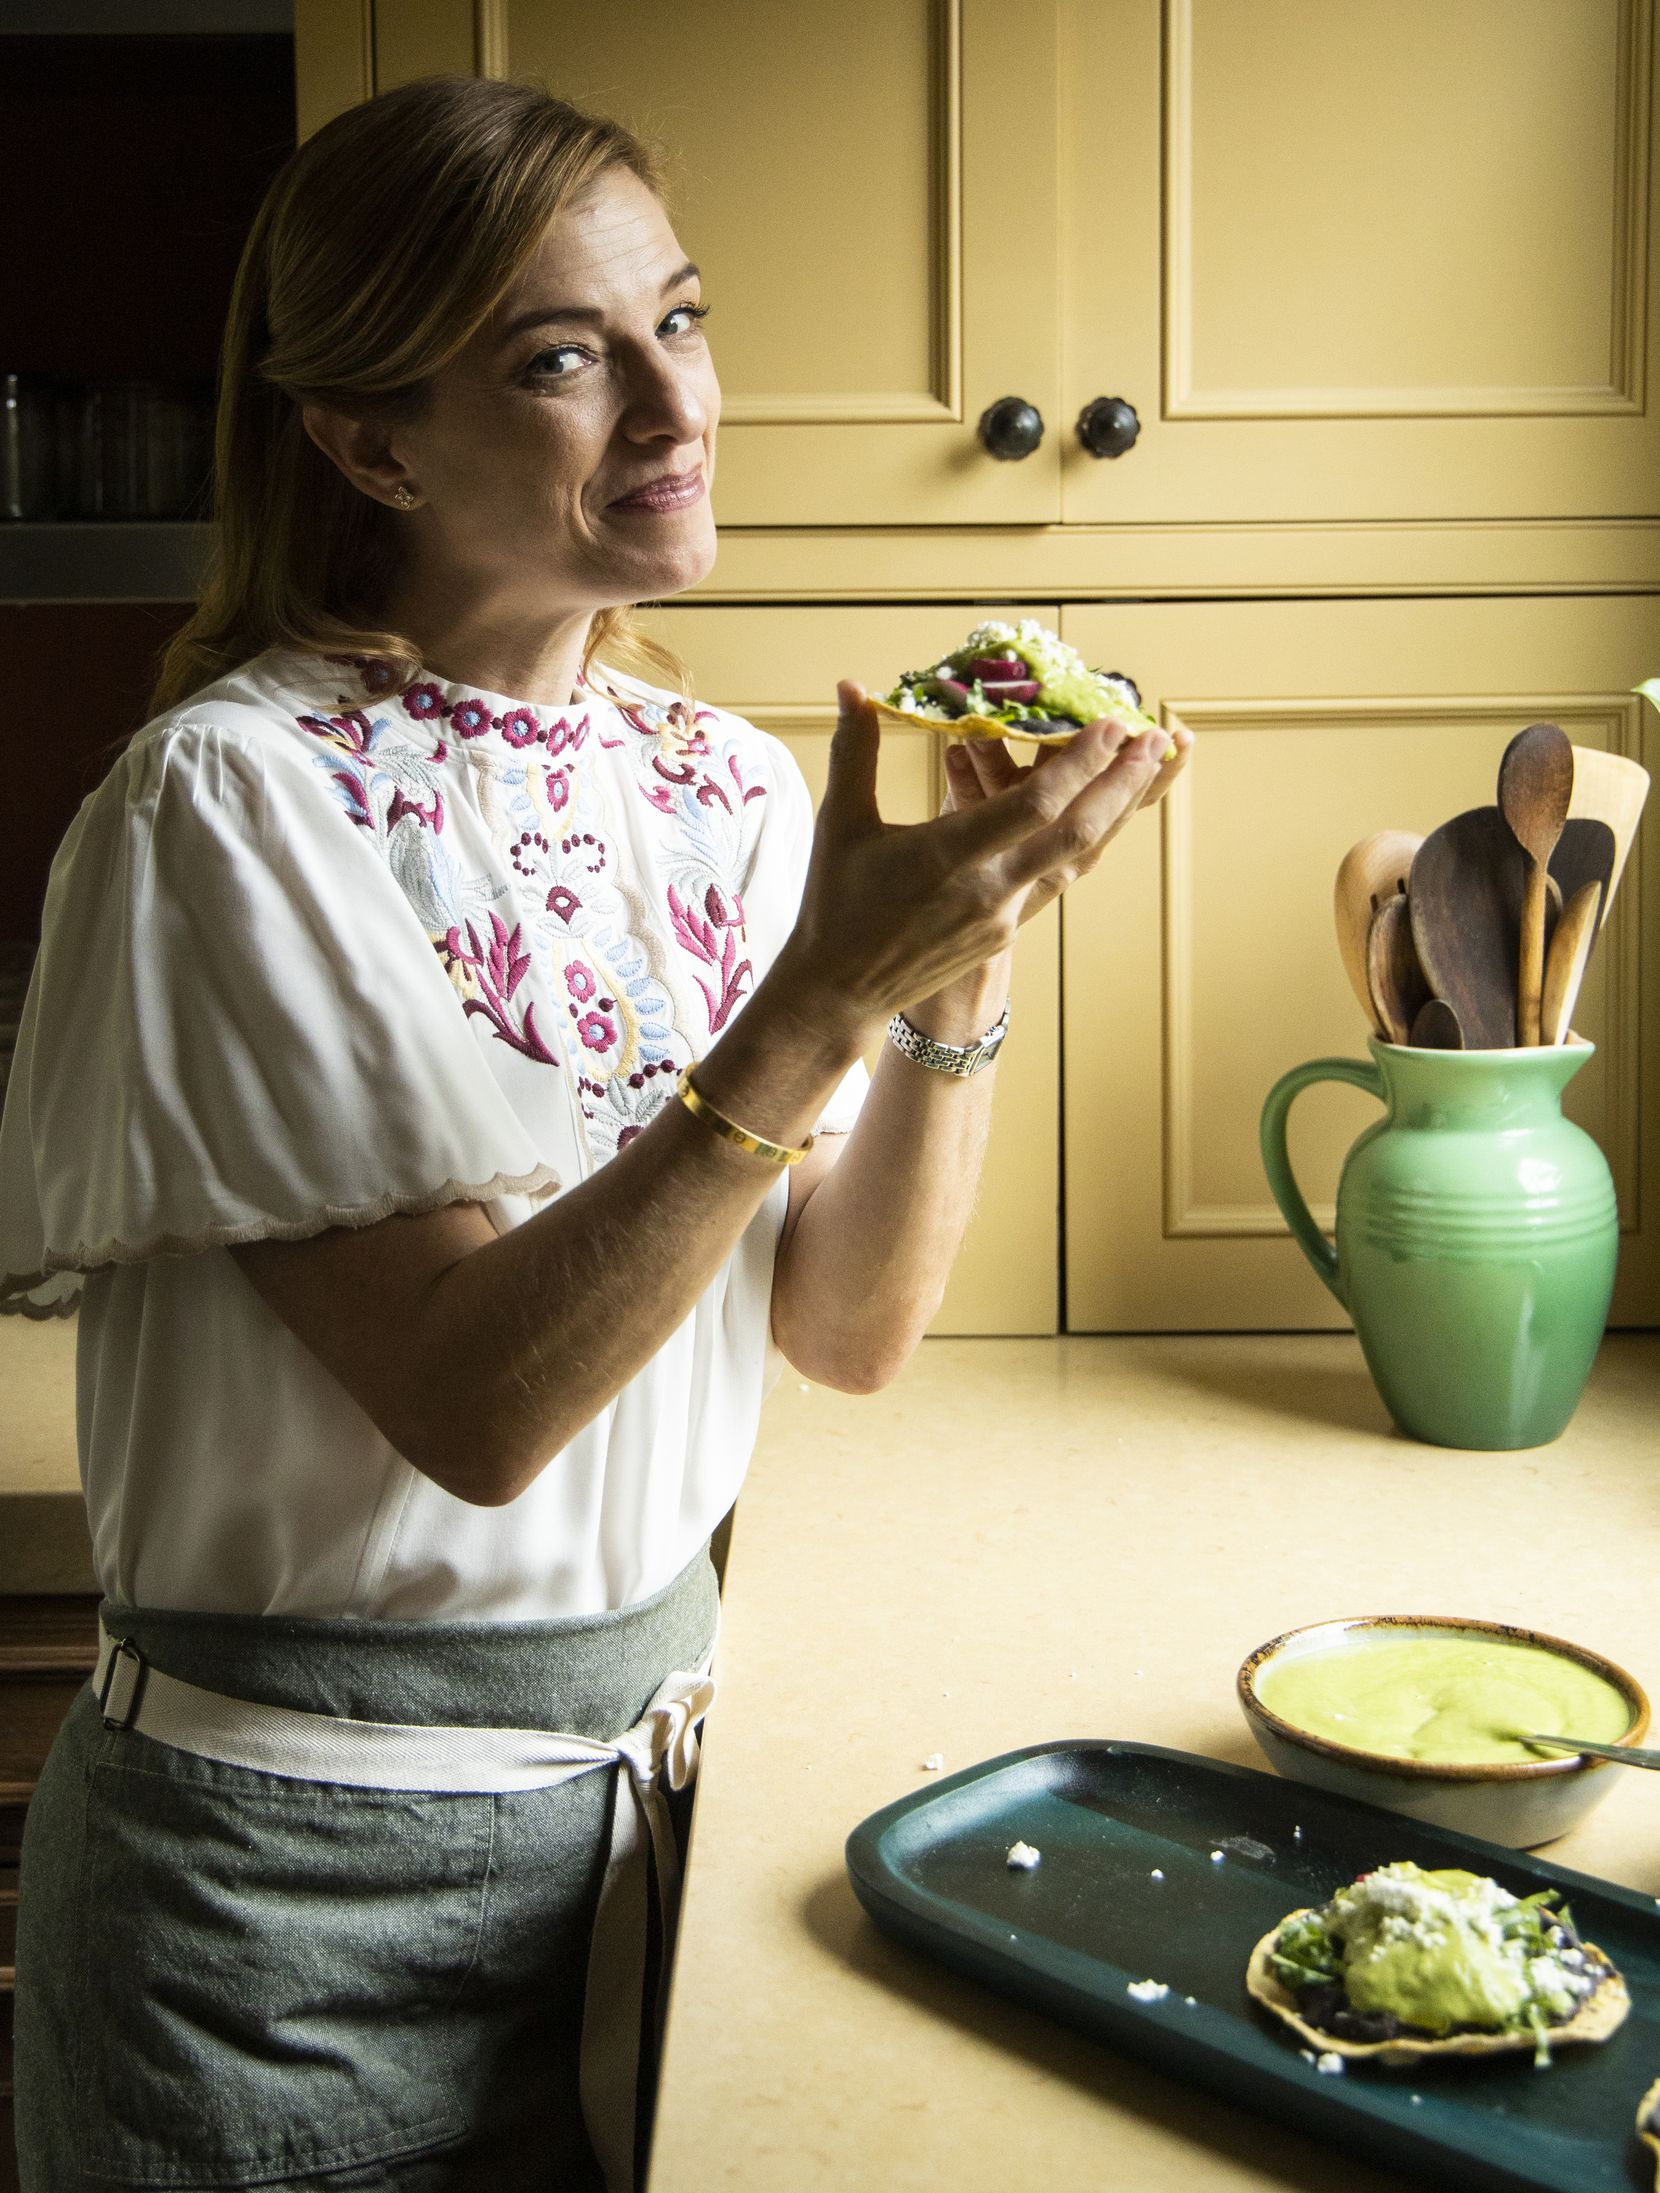 Pati Jinich is host of the popular James Beard Award winning and Emmy nominated PBS series Pati's Mexican Table. She's also a big fan of cooking with avocados during the holiday season and just about any day, she said.   Courtesy of Pati's Mexican Table.